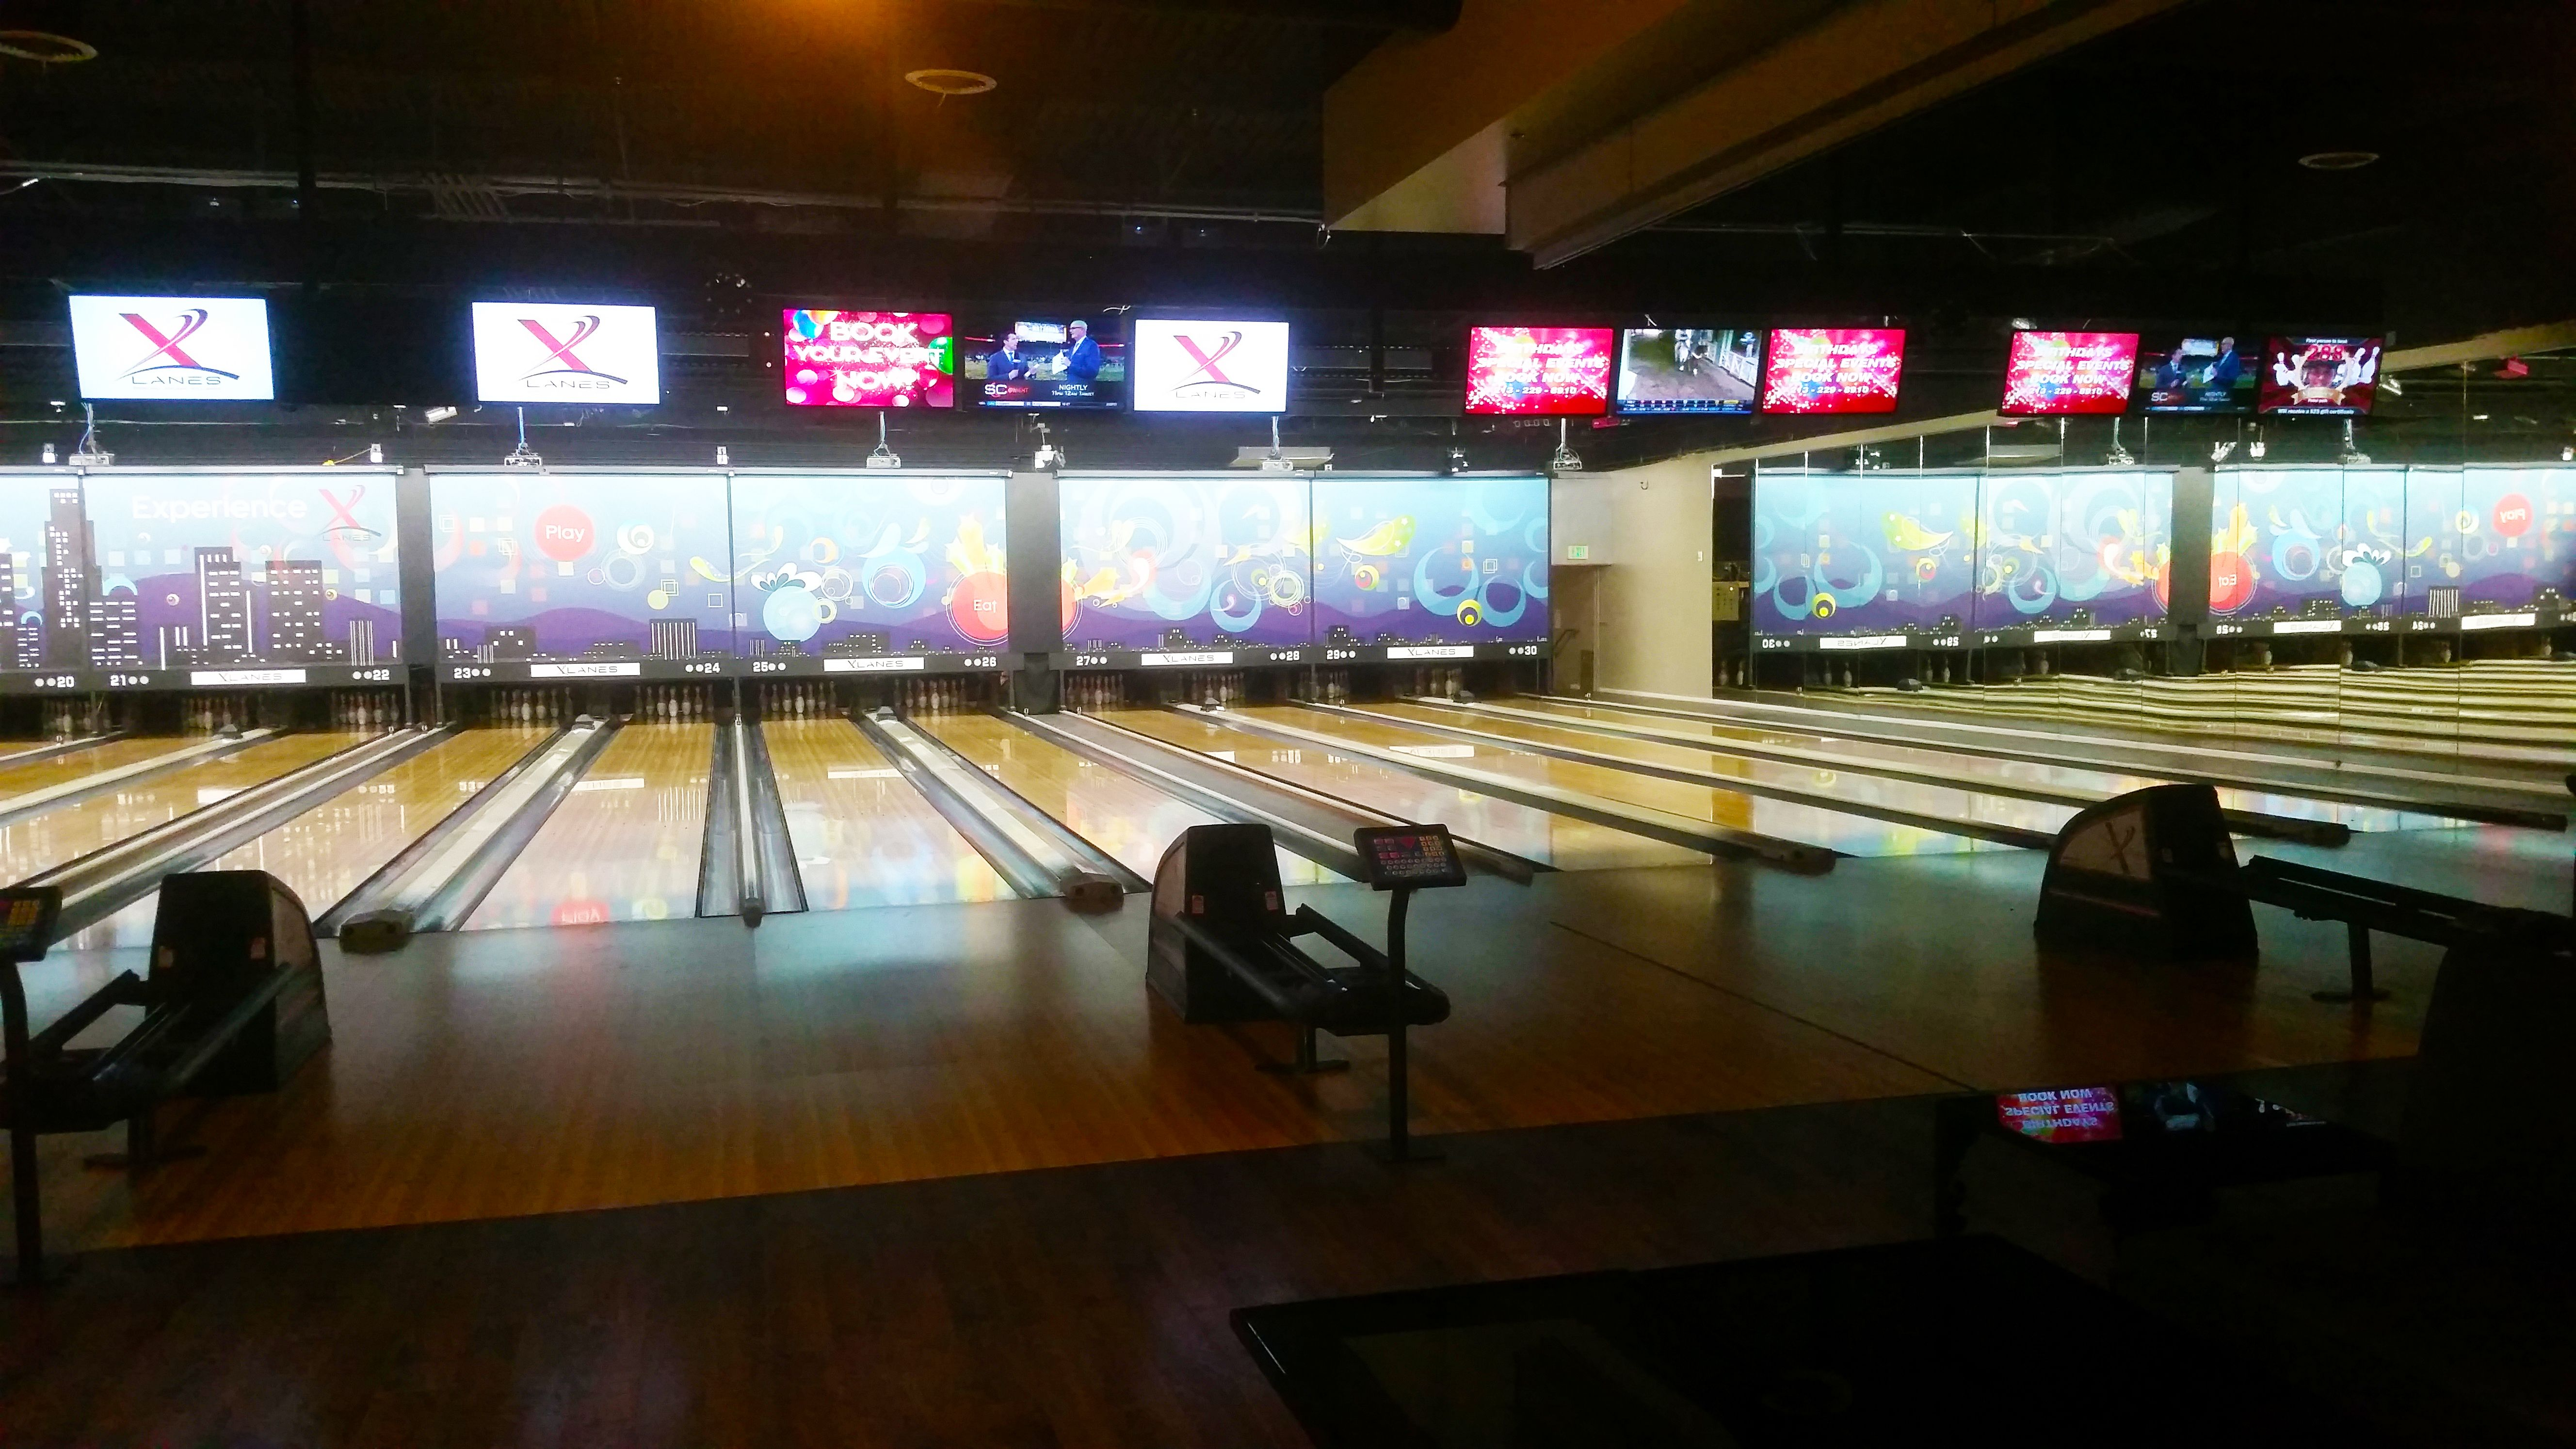 Join Us For Early Bird Bowling Monday Through Friday Open To 5 Pm For Only 2 75 Game Xlanesla Www Xlanesla Com 213 2 Bowling Basketball Court Television